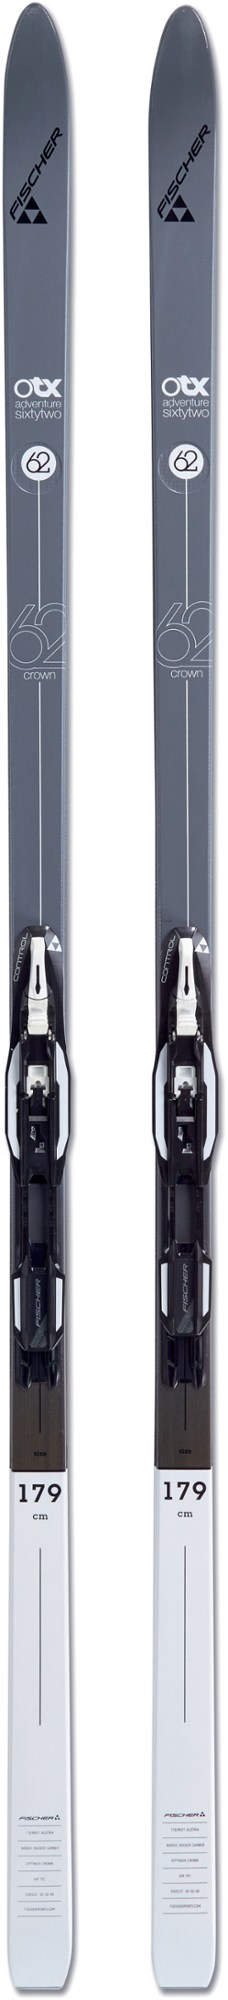 Fischer Adventure 62 Crown + Control Cross-Country Skis with Bindings - Men's